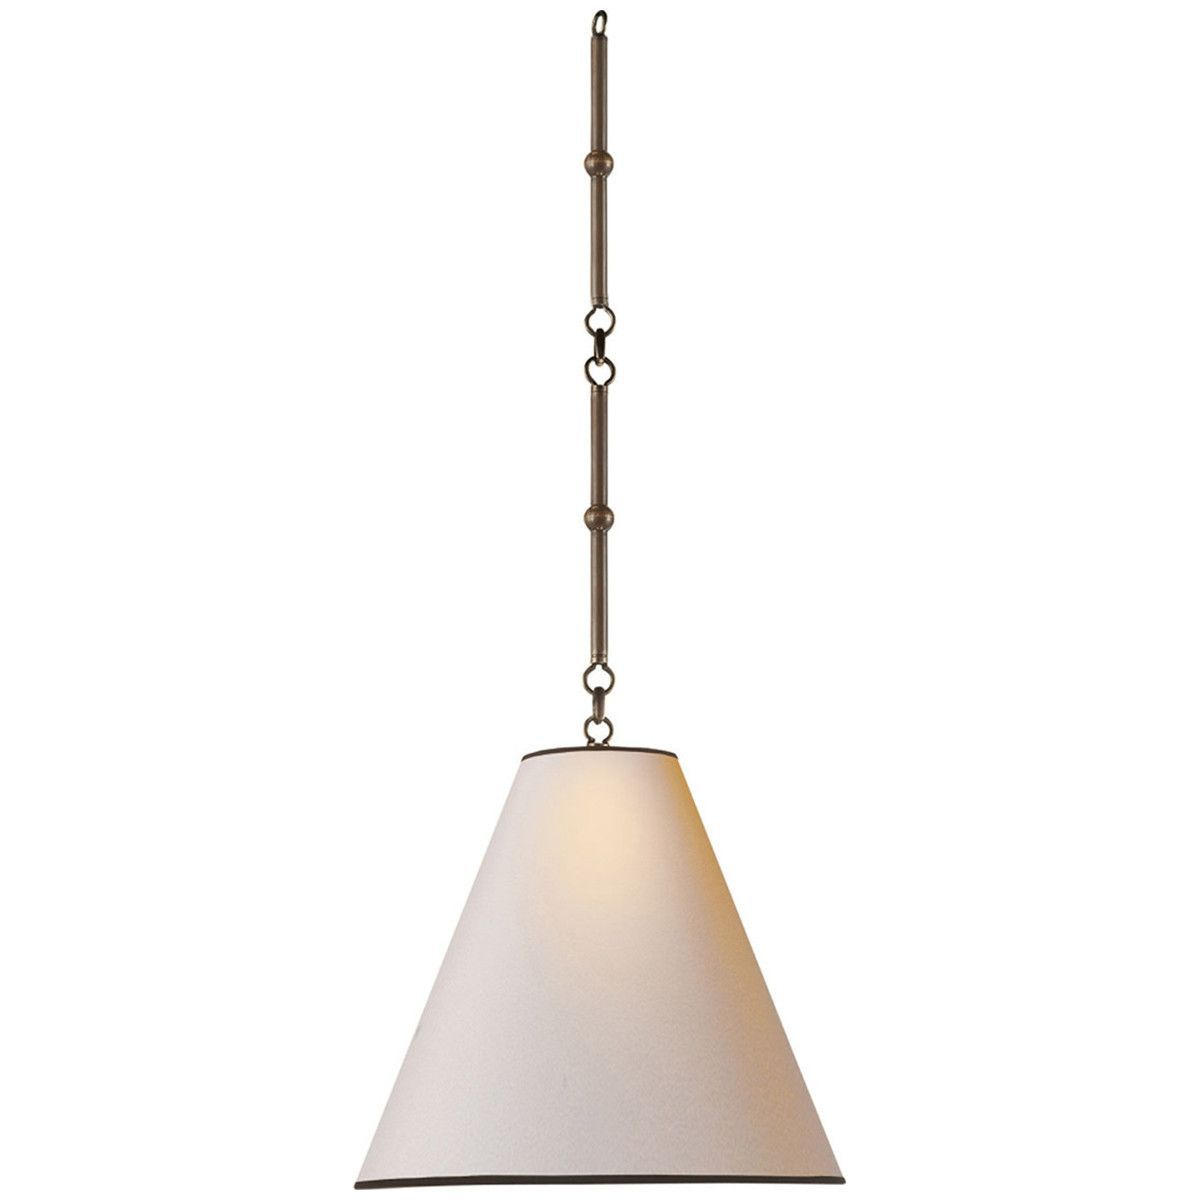 Visual Comfort Lighting Thomas OBrien Goodman Hanging Shade in Bronze